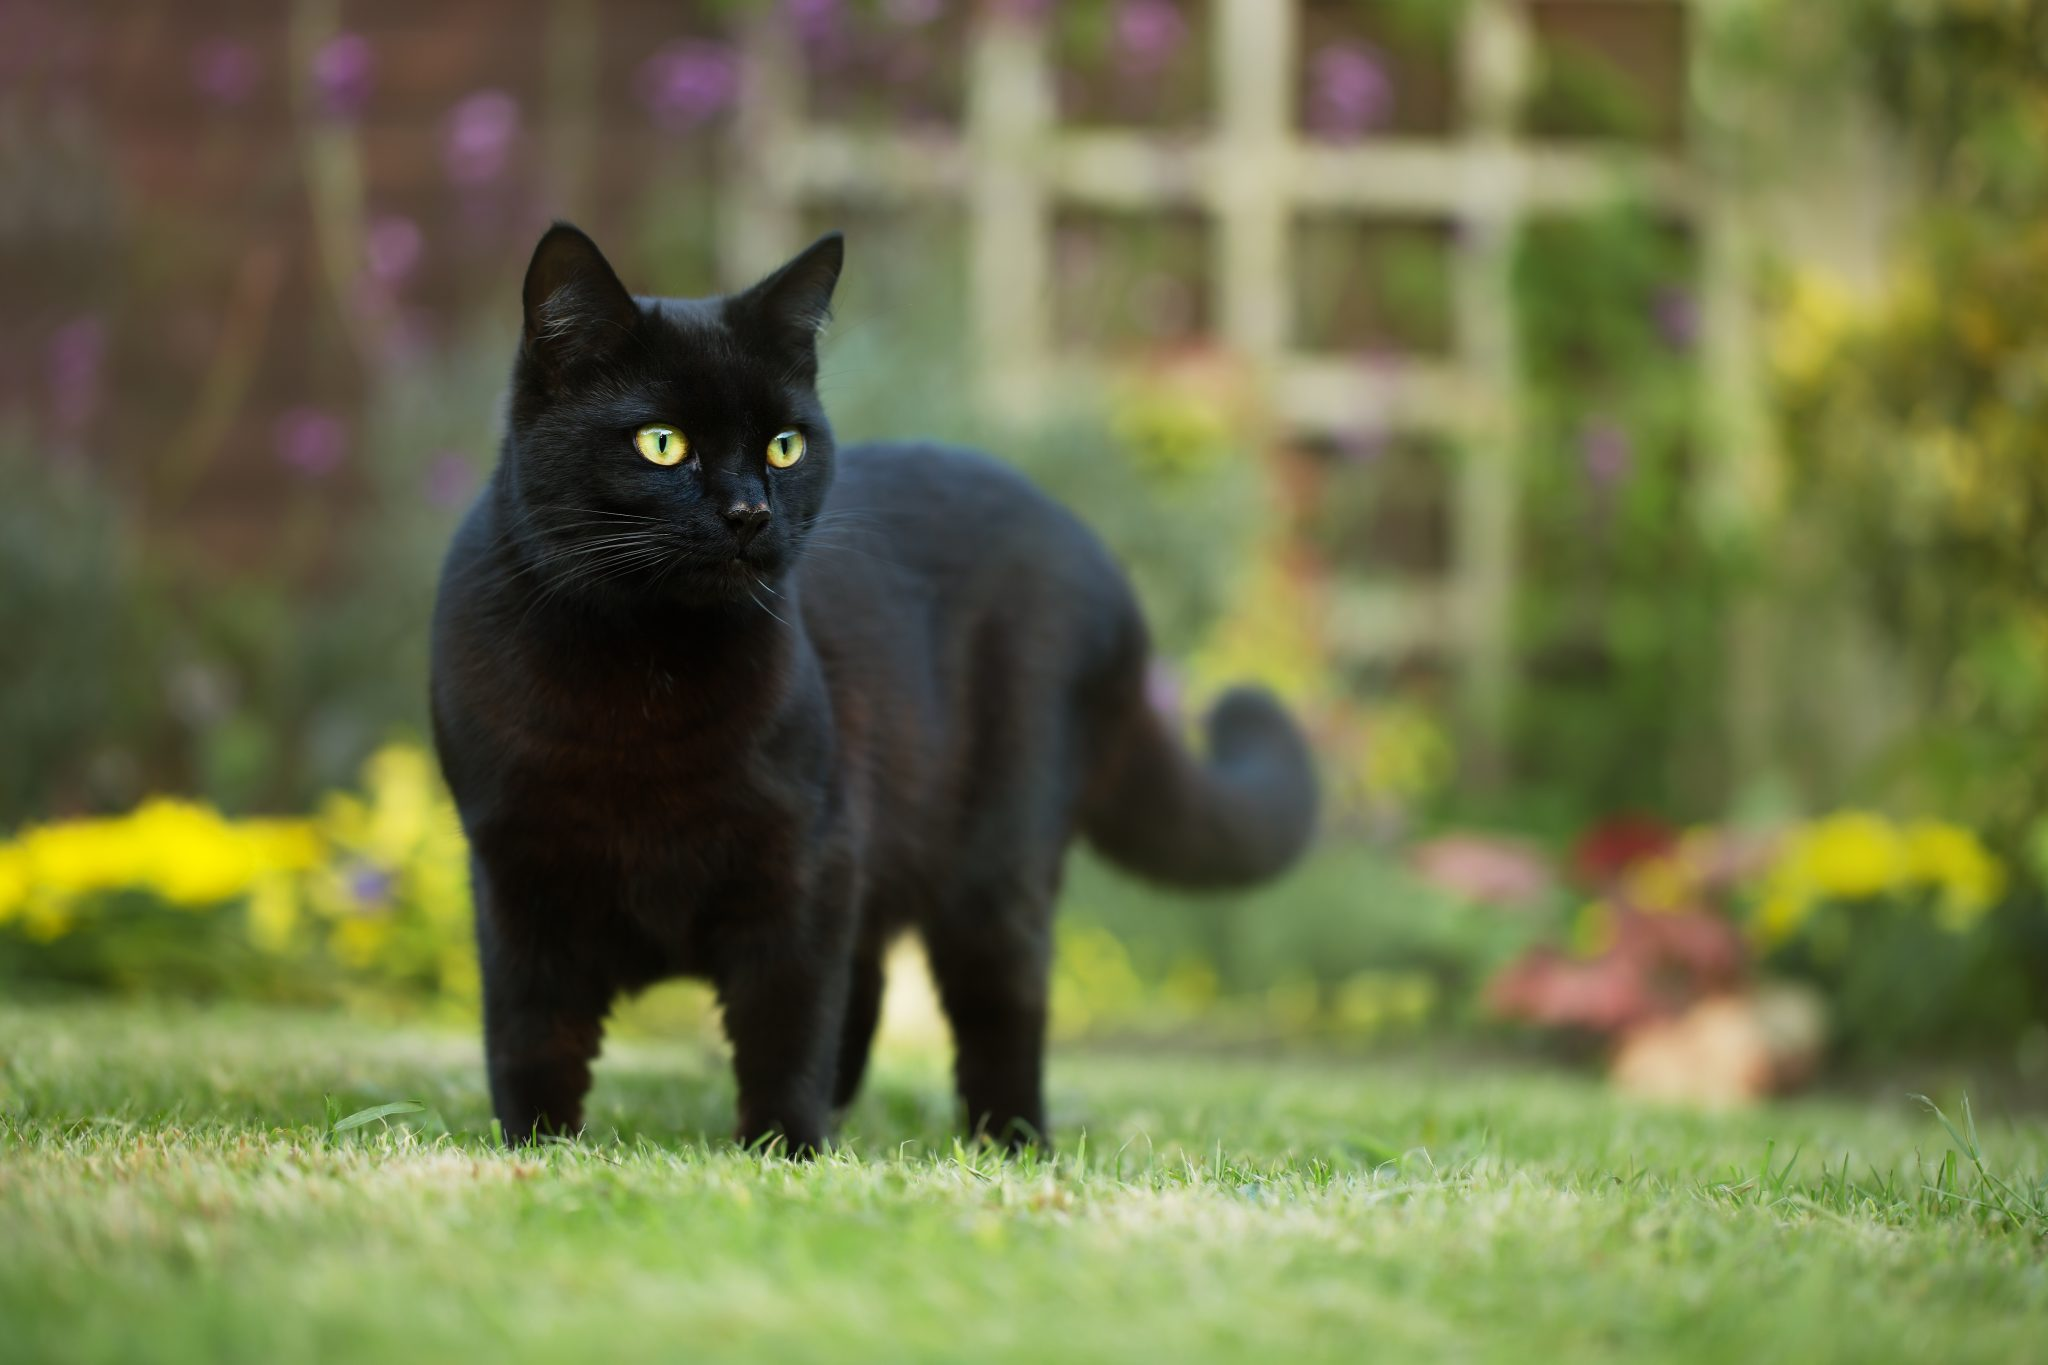 Petition: Black Cats Killed and Ground Up into Paste as Misleading Coronavirus Treatment